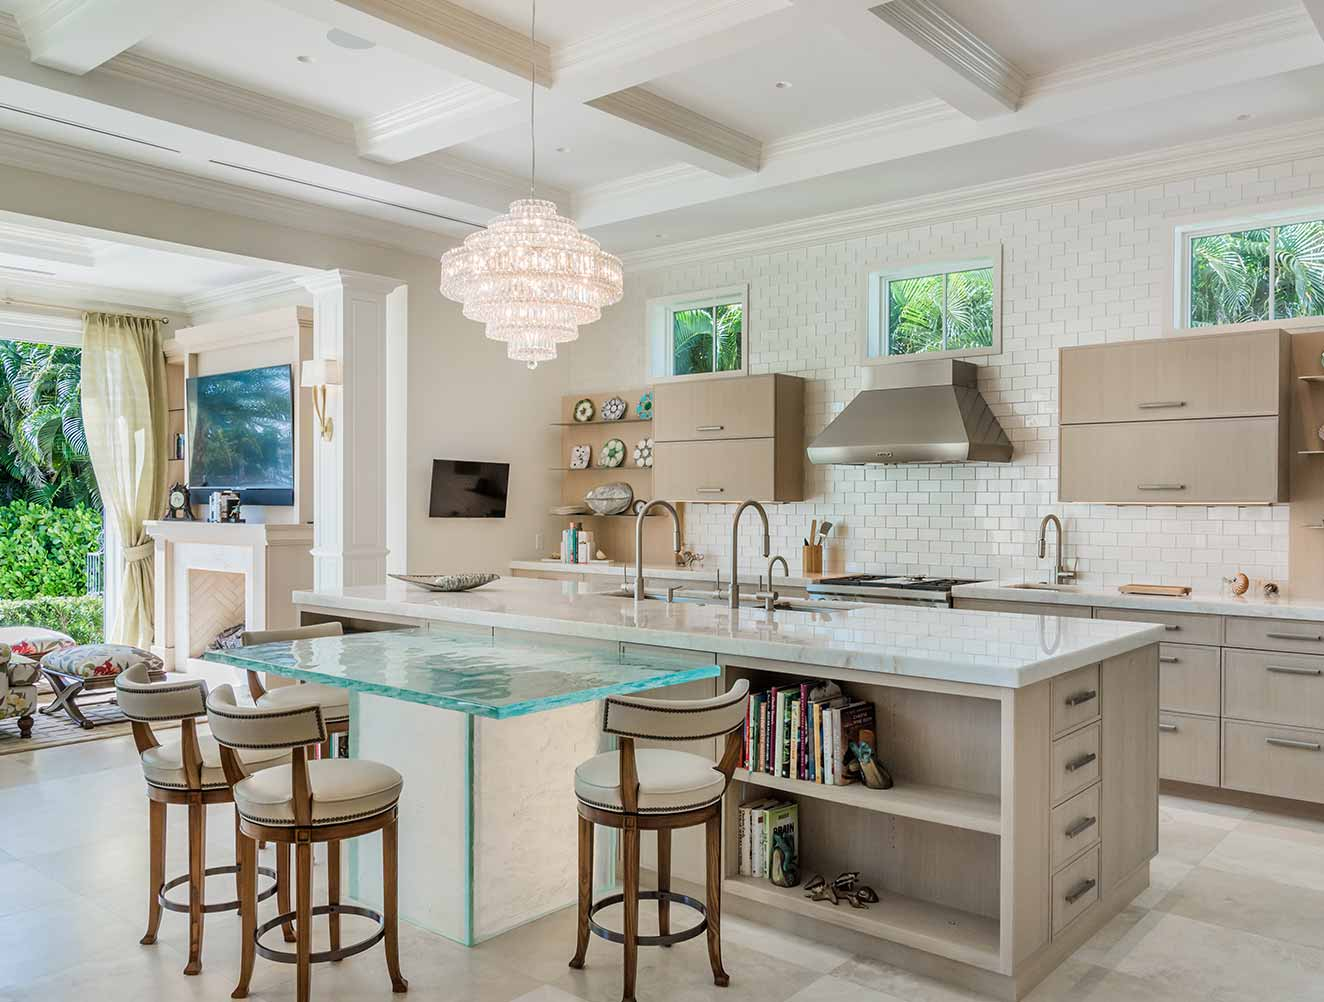 Modern Kitchen at Cove Residence in Naples Florida, single family home designed by Kukk Architecture & Design Naples Architecture Firm